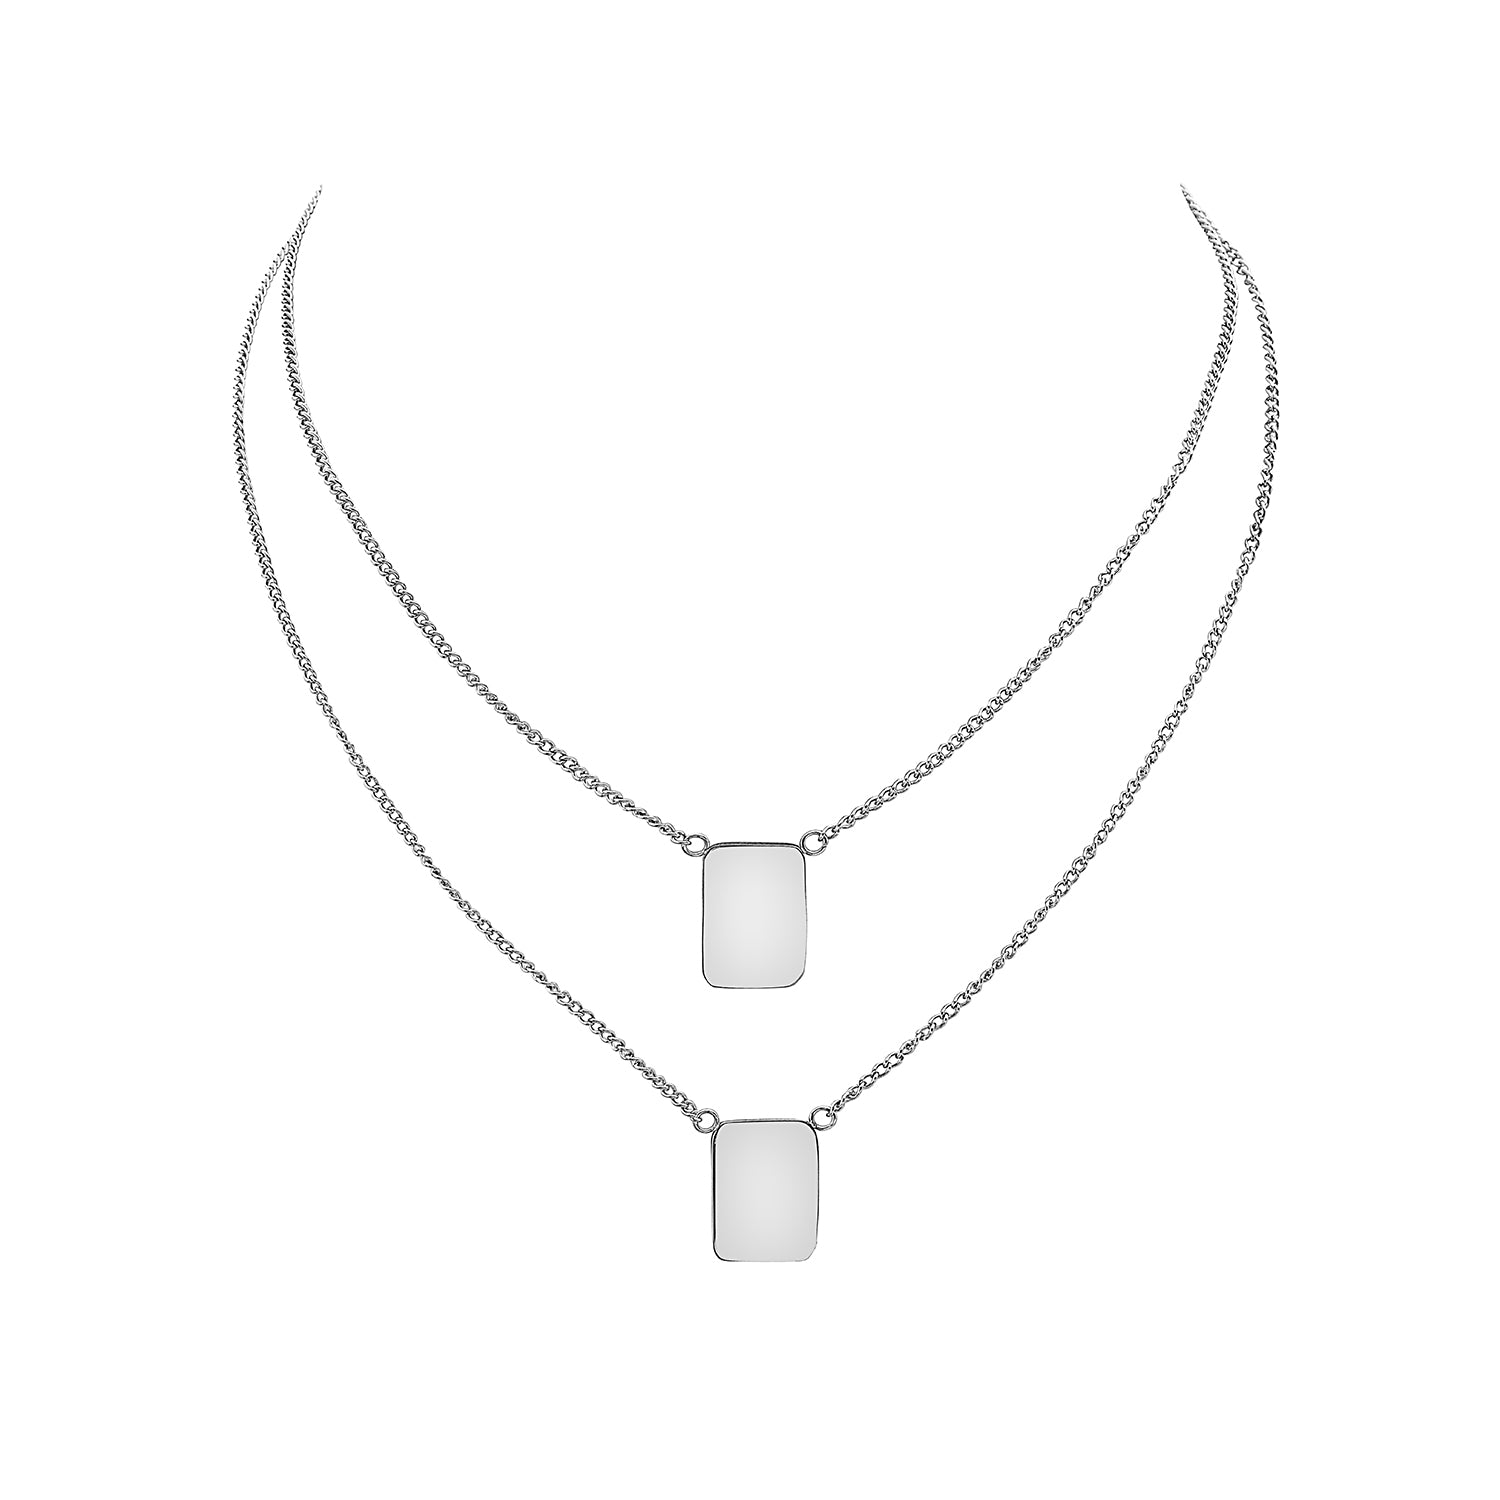 Scapular Necklace by anthony pecoraro for seven50 \\ Hot Summer Trend in 2018